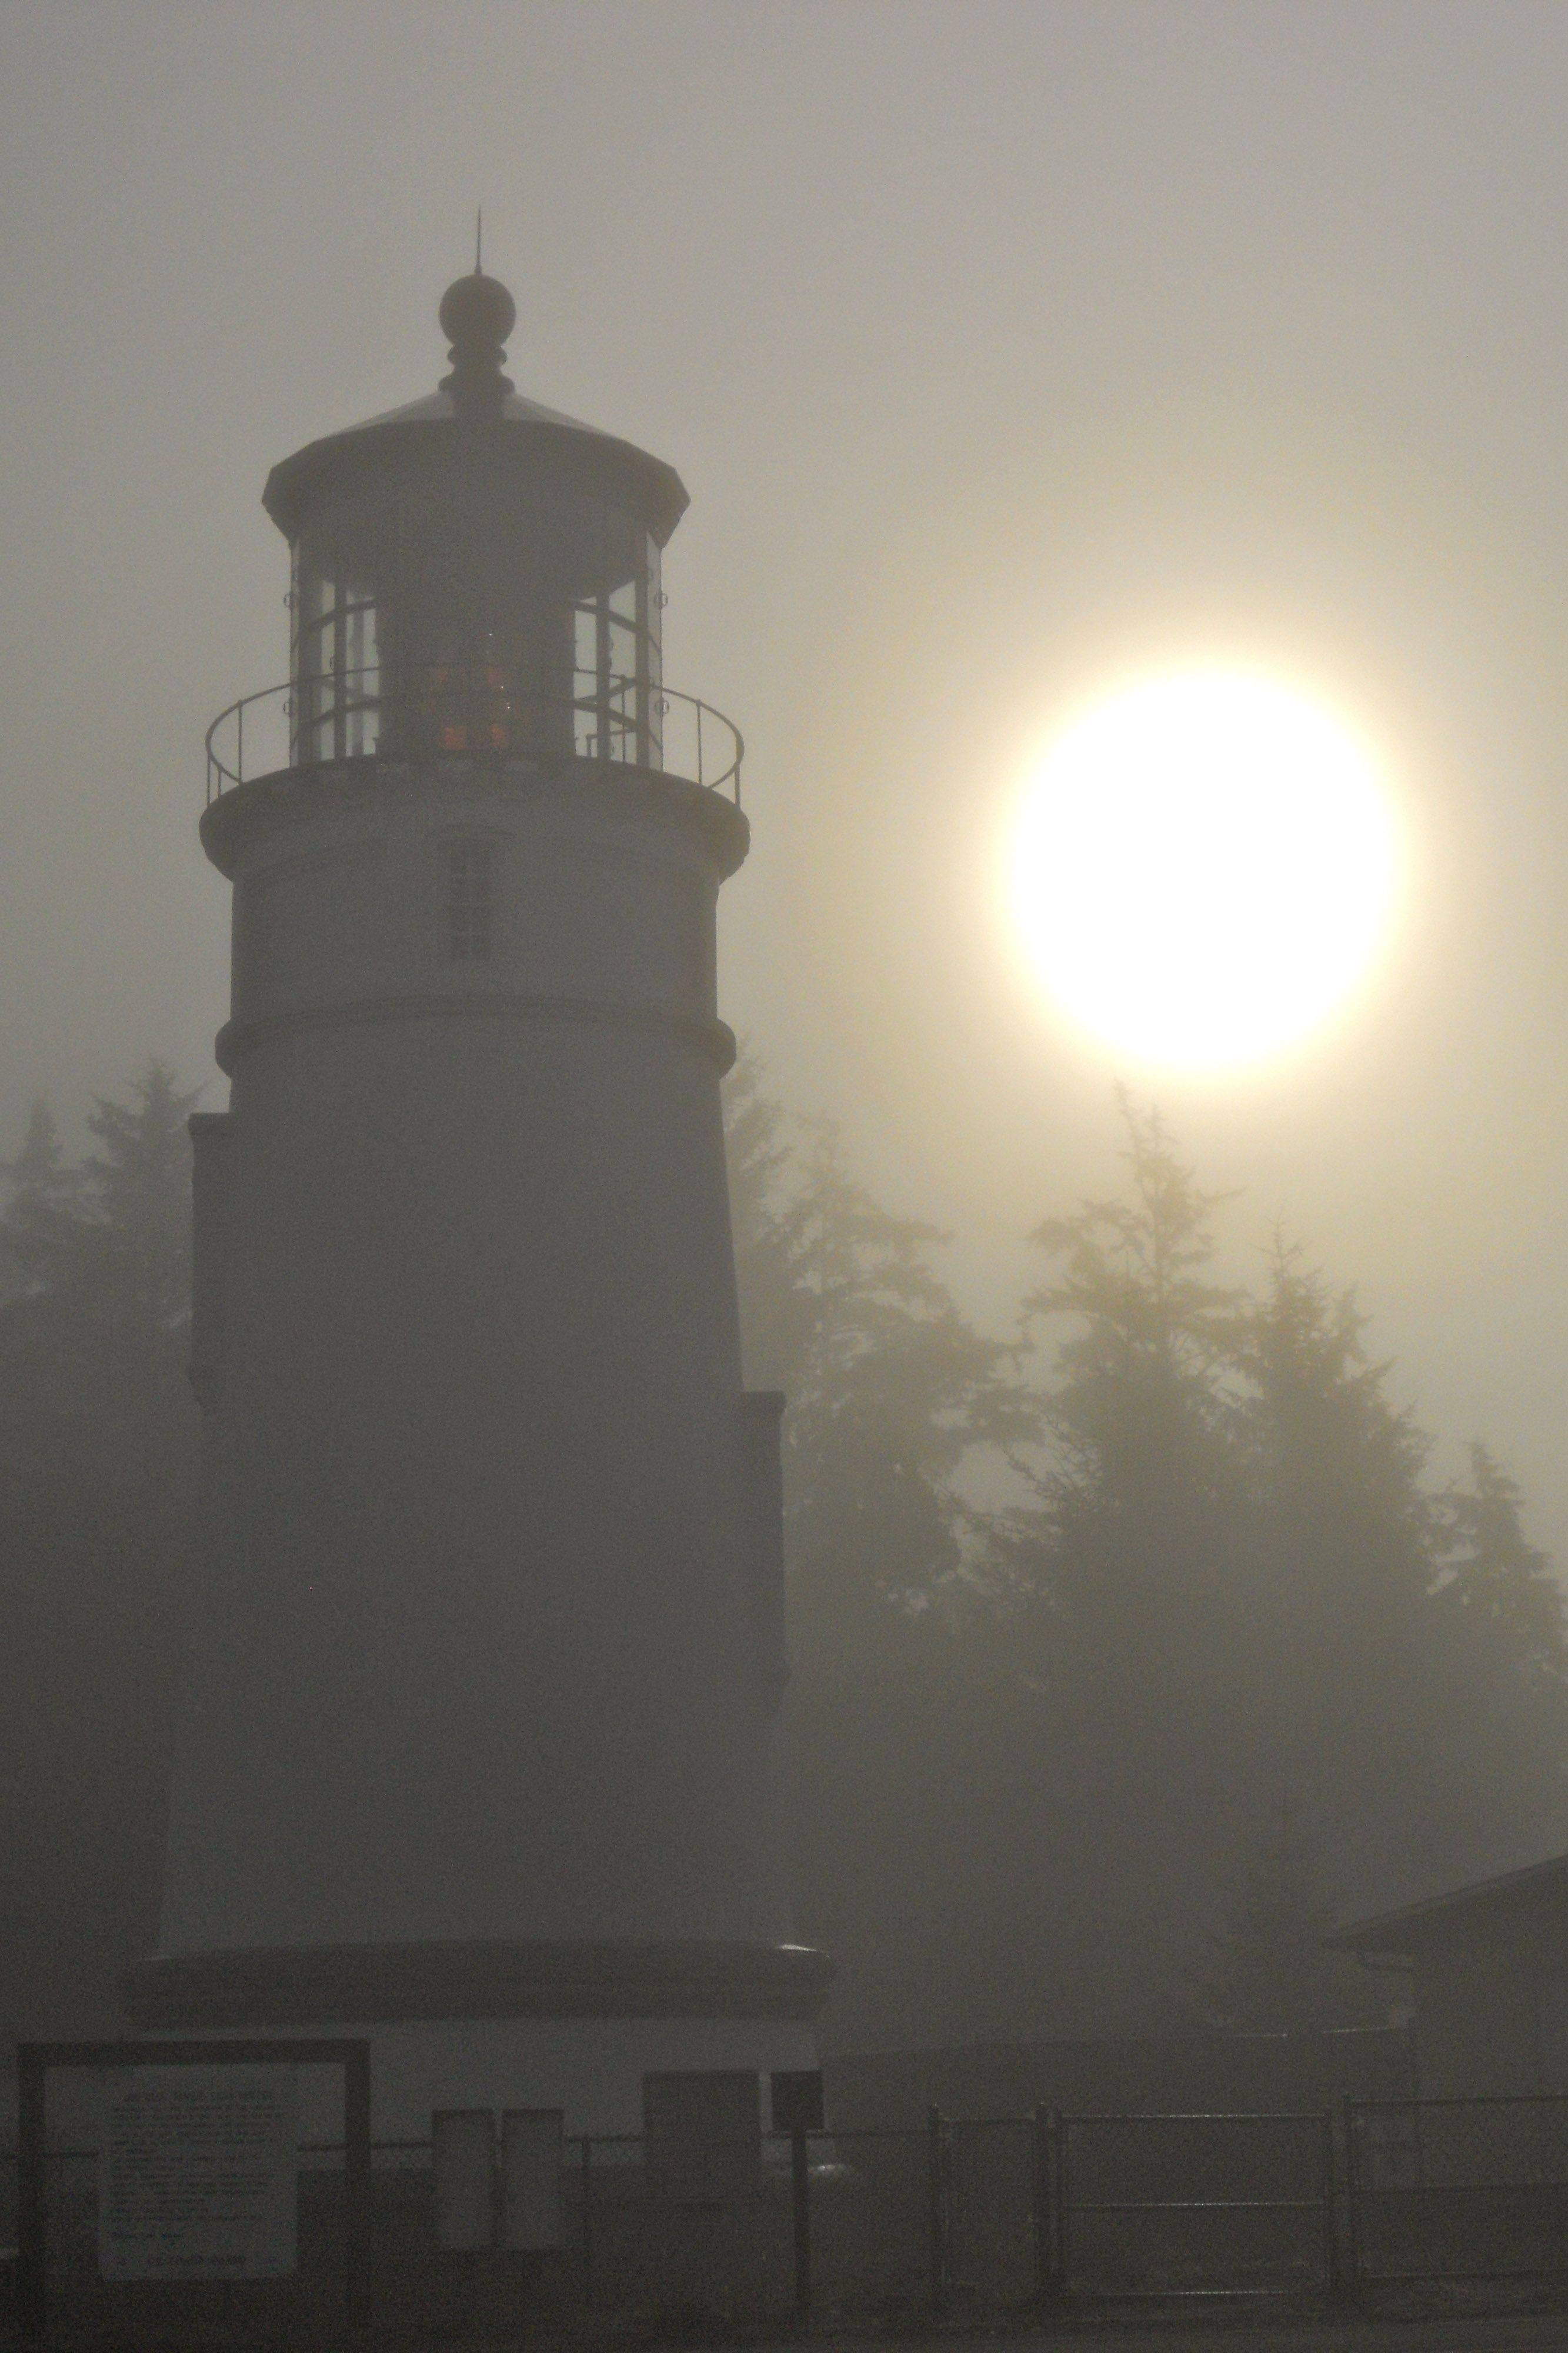 This is the Umqua Lighthouse at Winchester Bay on the coast of Oregon. The fog was thick on the coast that morning in September 2010.